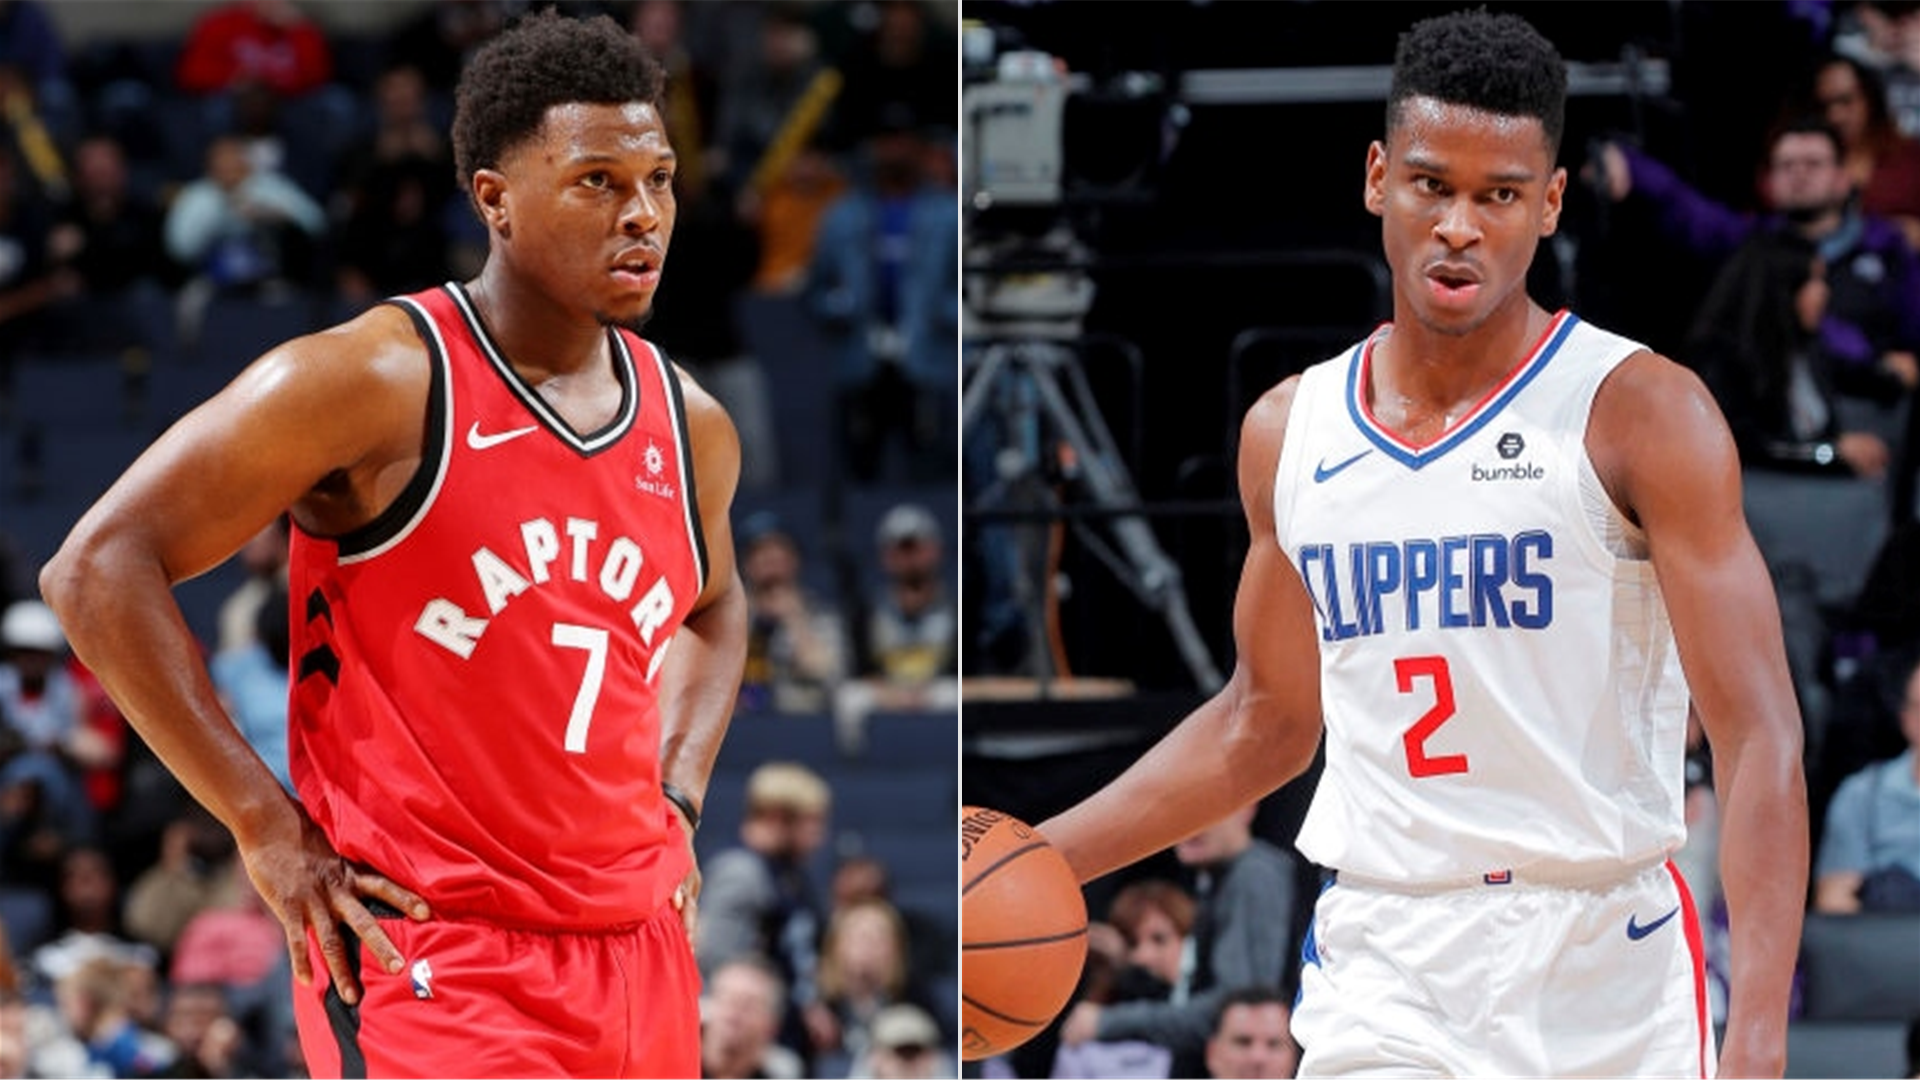 Raptors News: Toronto Raptors Vs. LA Clippers: Game Preview, Live Stream